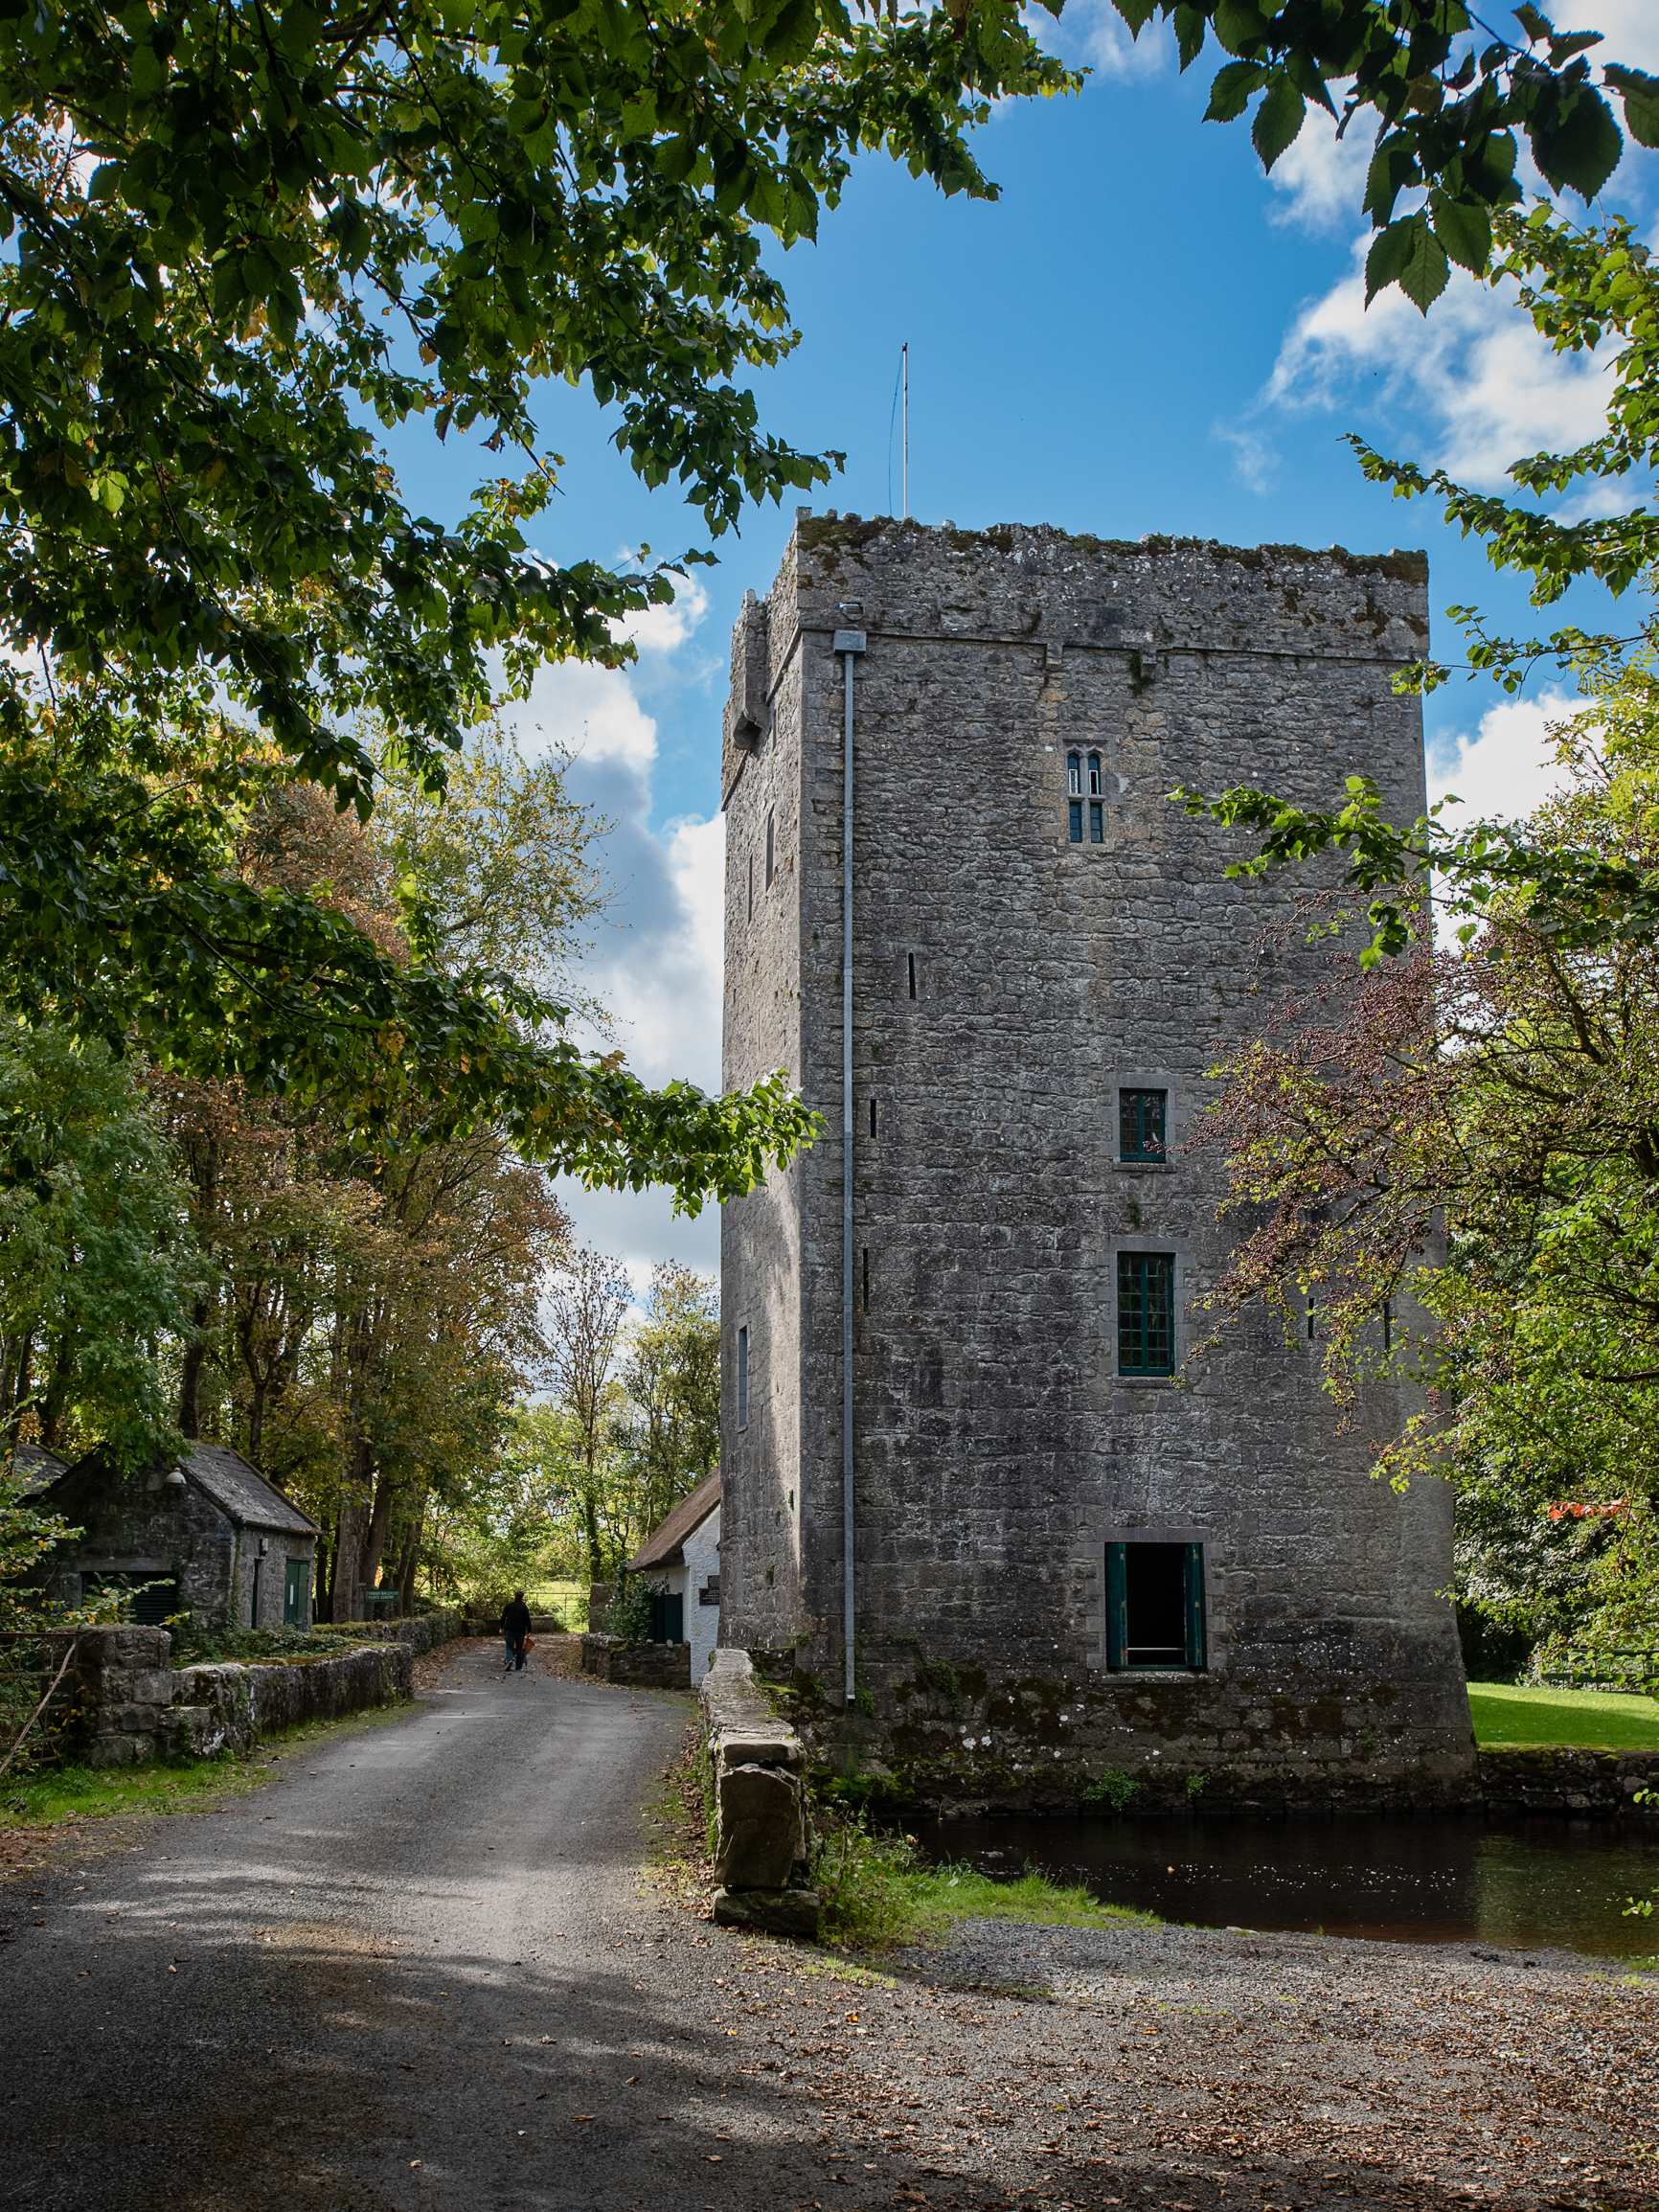 Old Castle, Galway Ireland built by Yeats